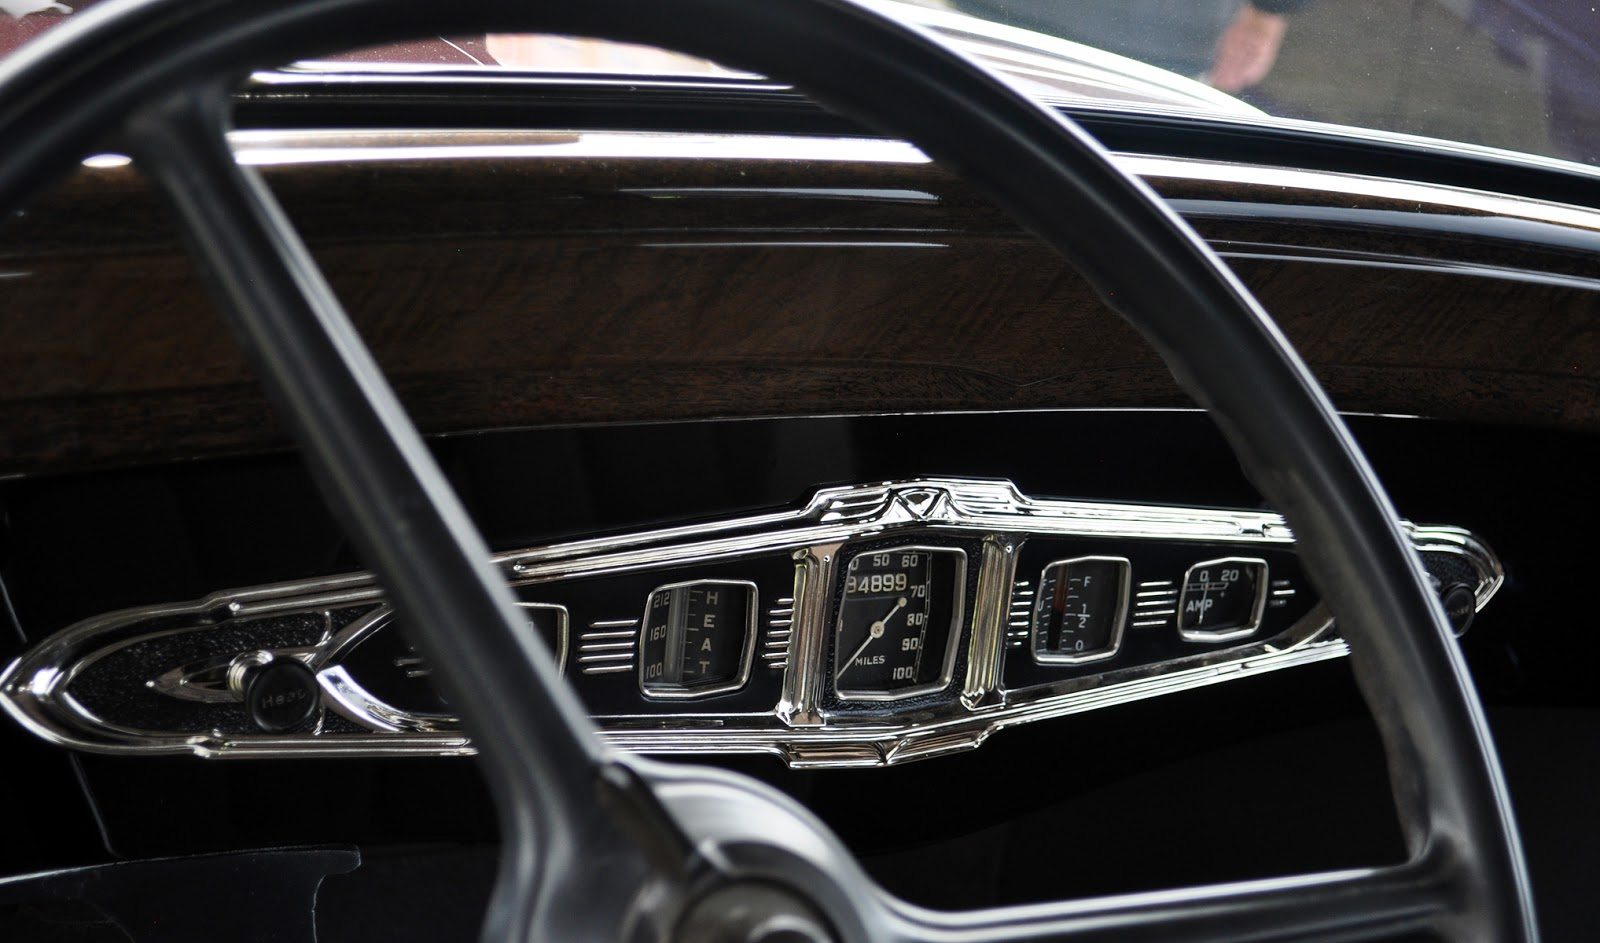 Just A Car Guy A Realy Nicely Designed Instrument Gauge